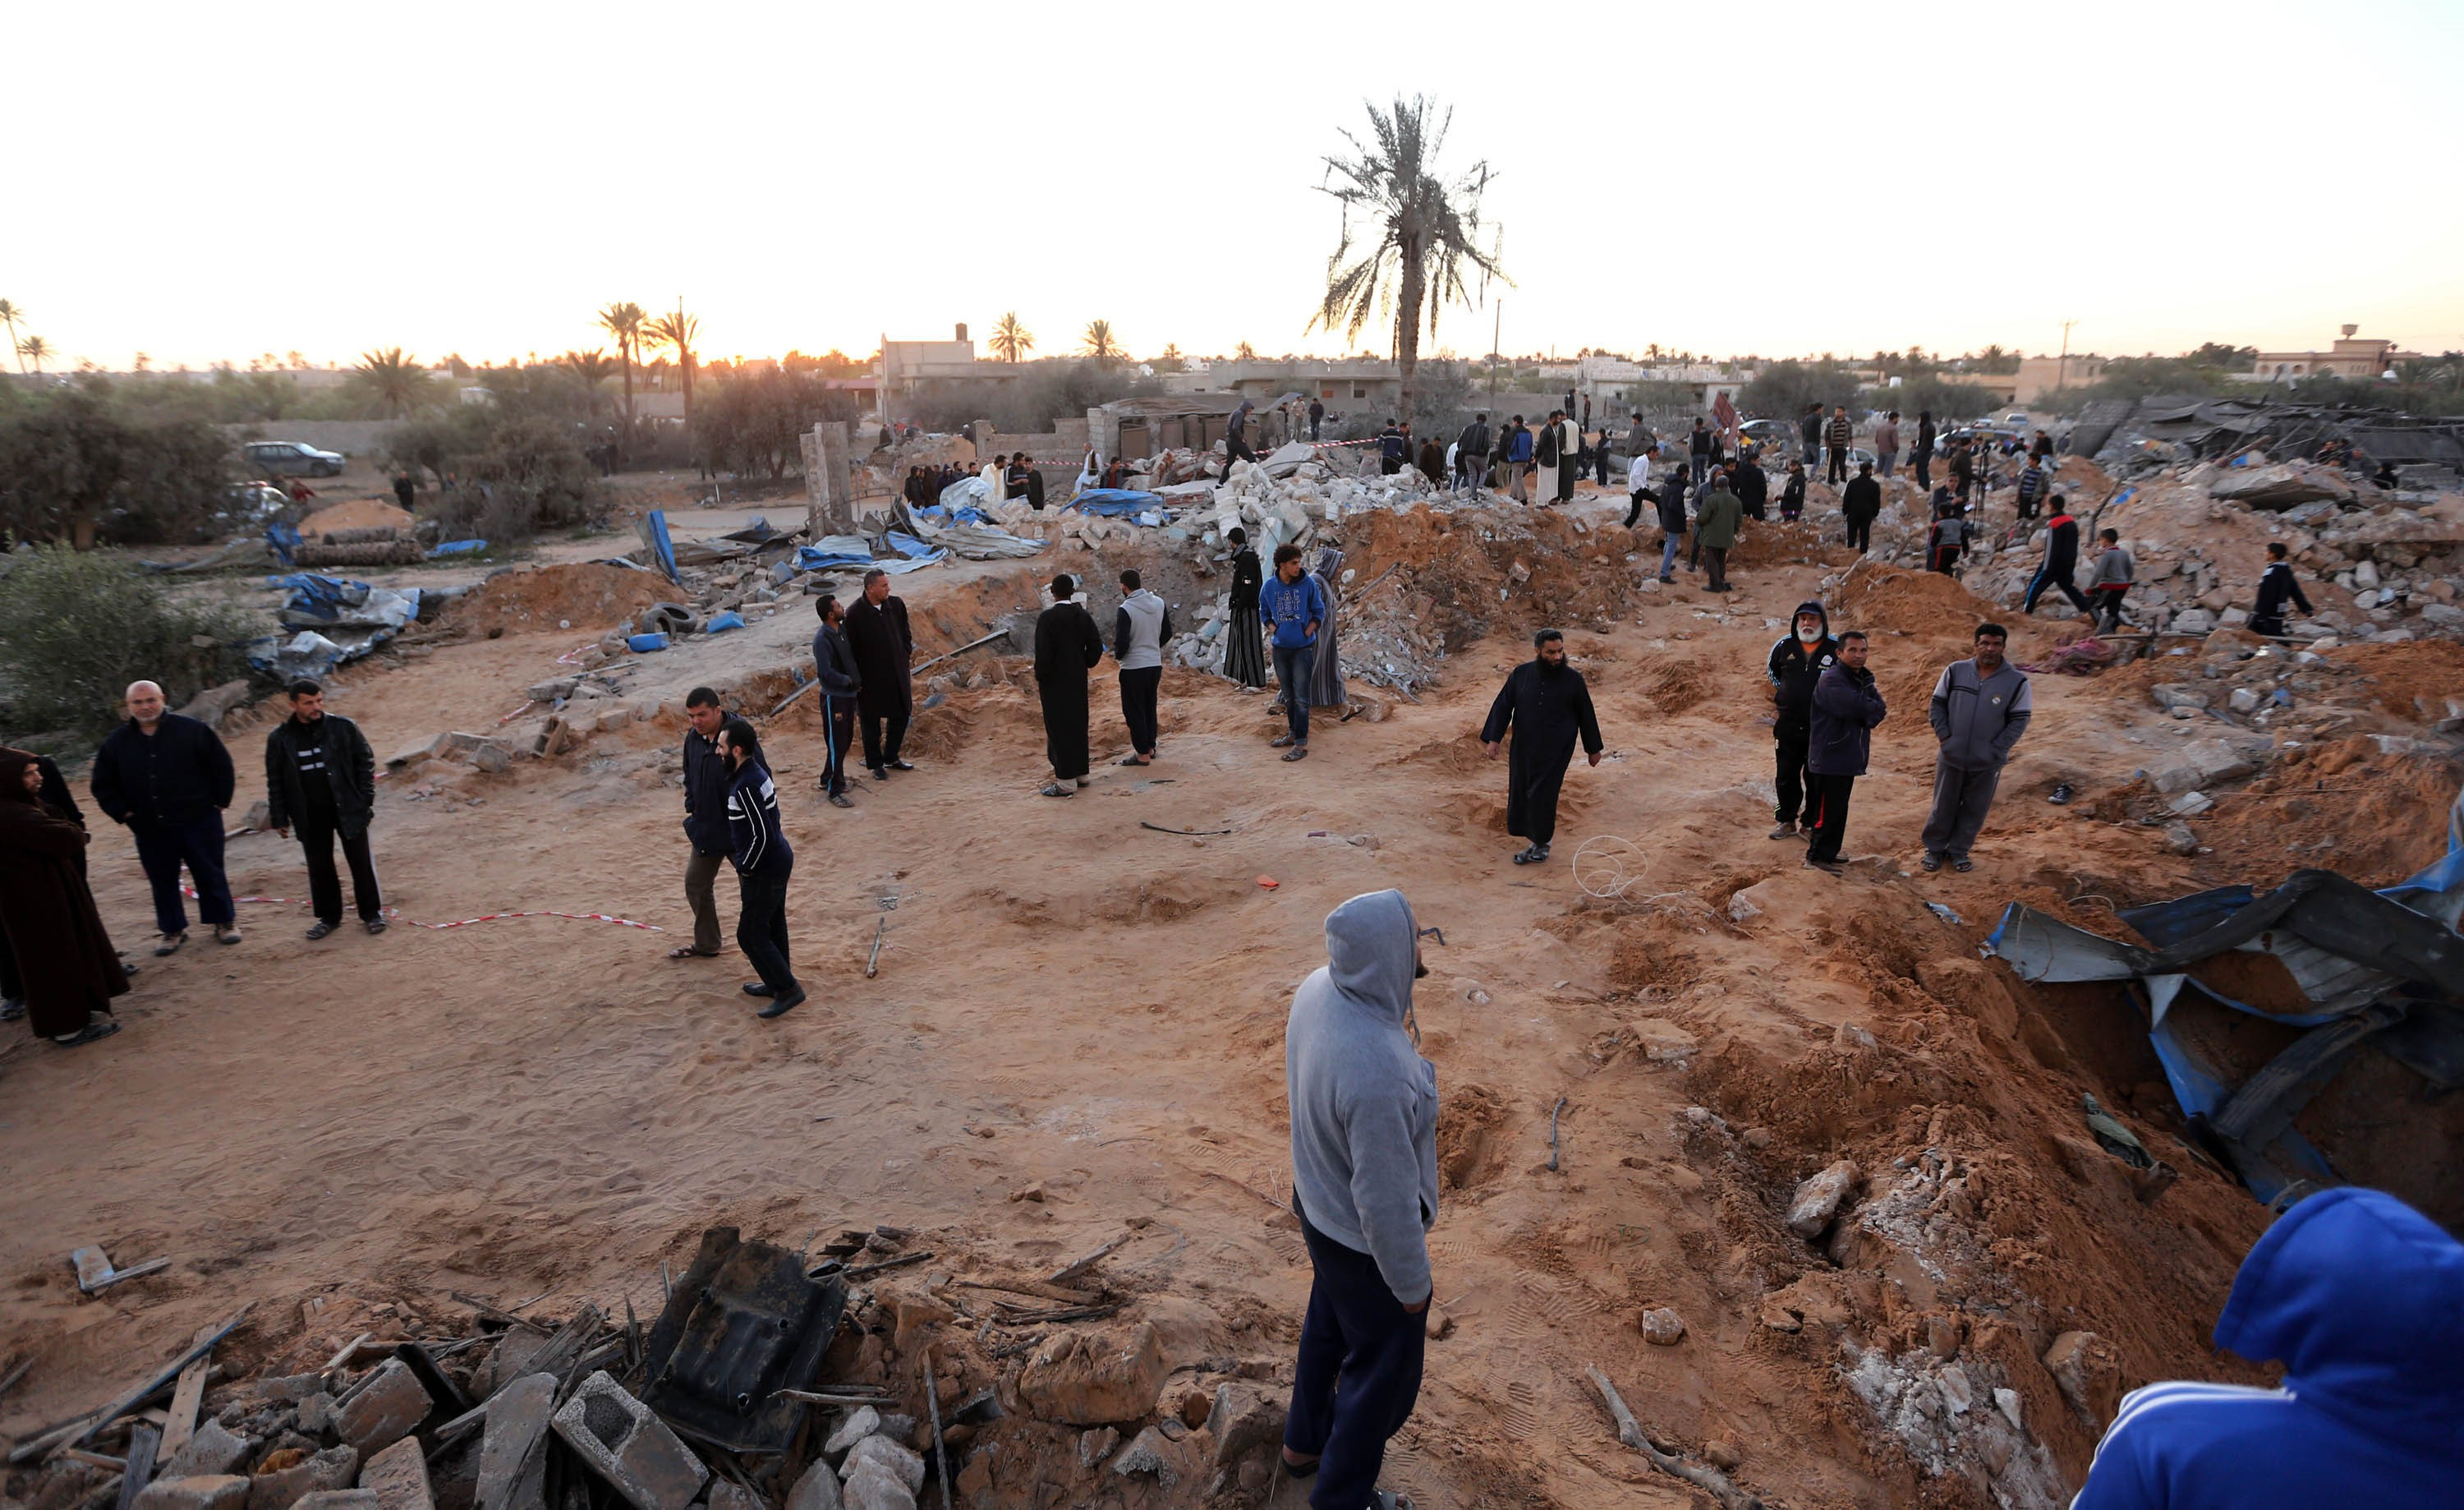 People gather around a damaged area after U.S. warplanes carried out air strikes against Daesh training camp in western Libya on Feb. 19, 2016.